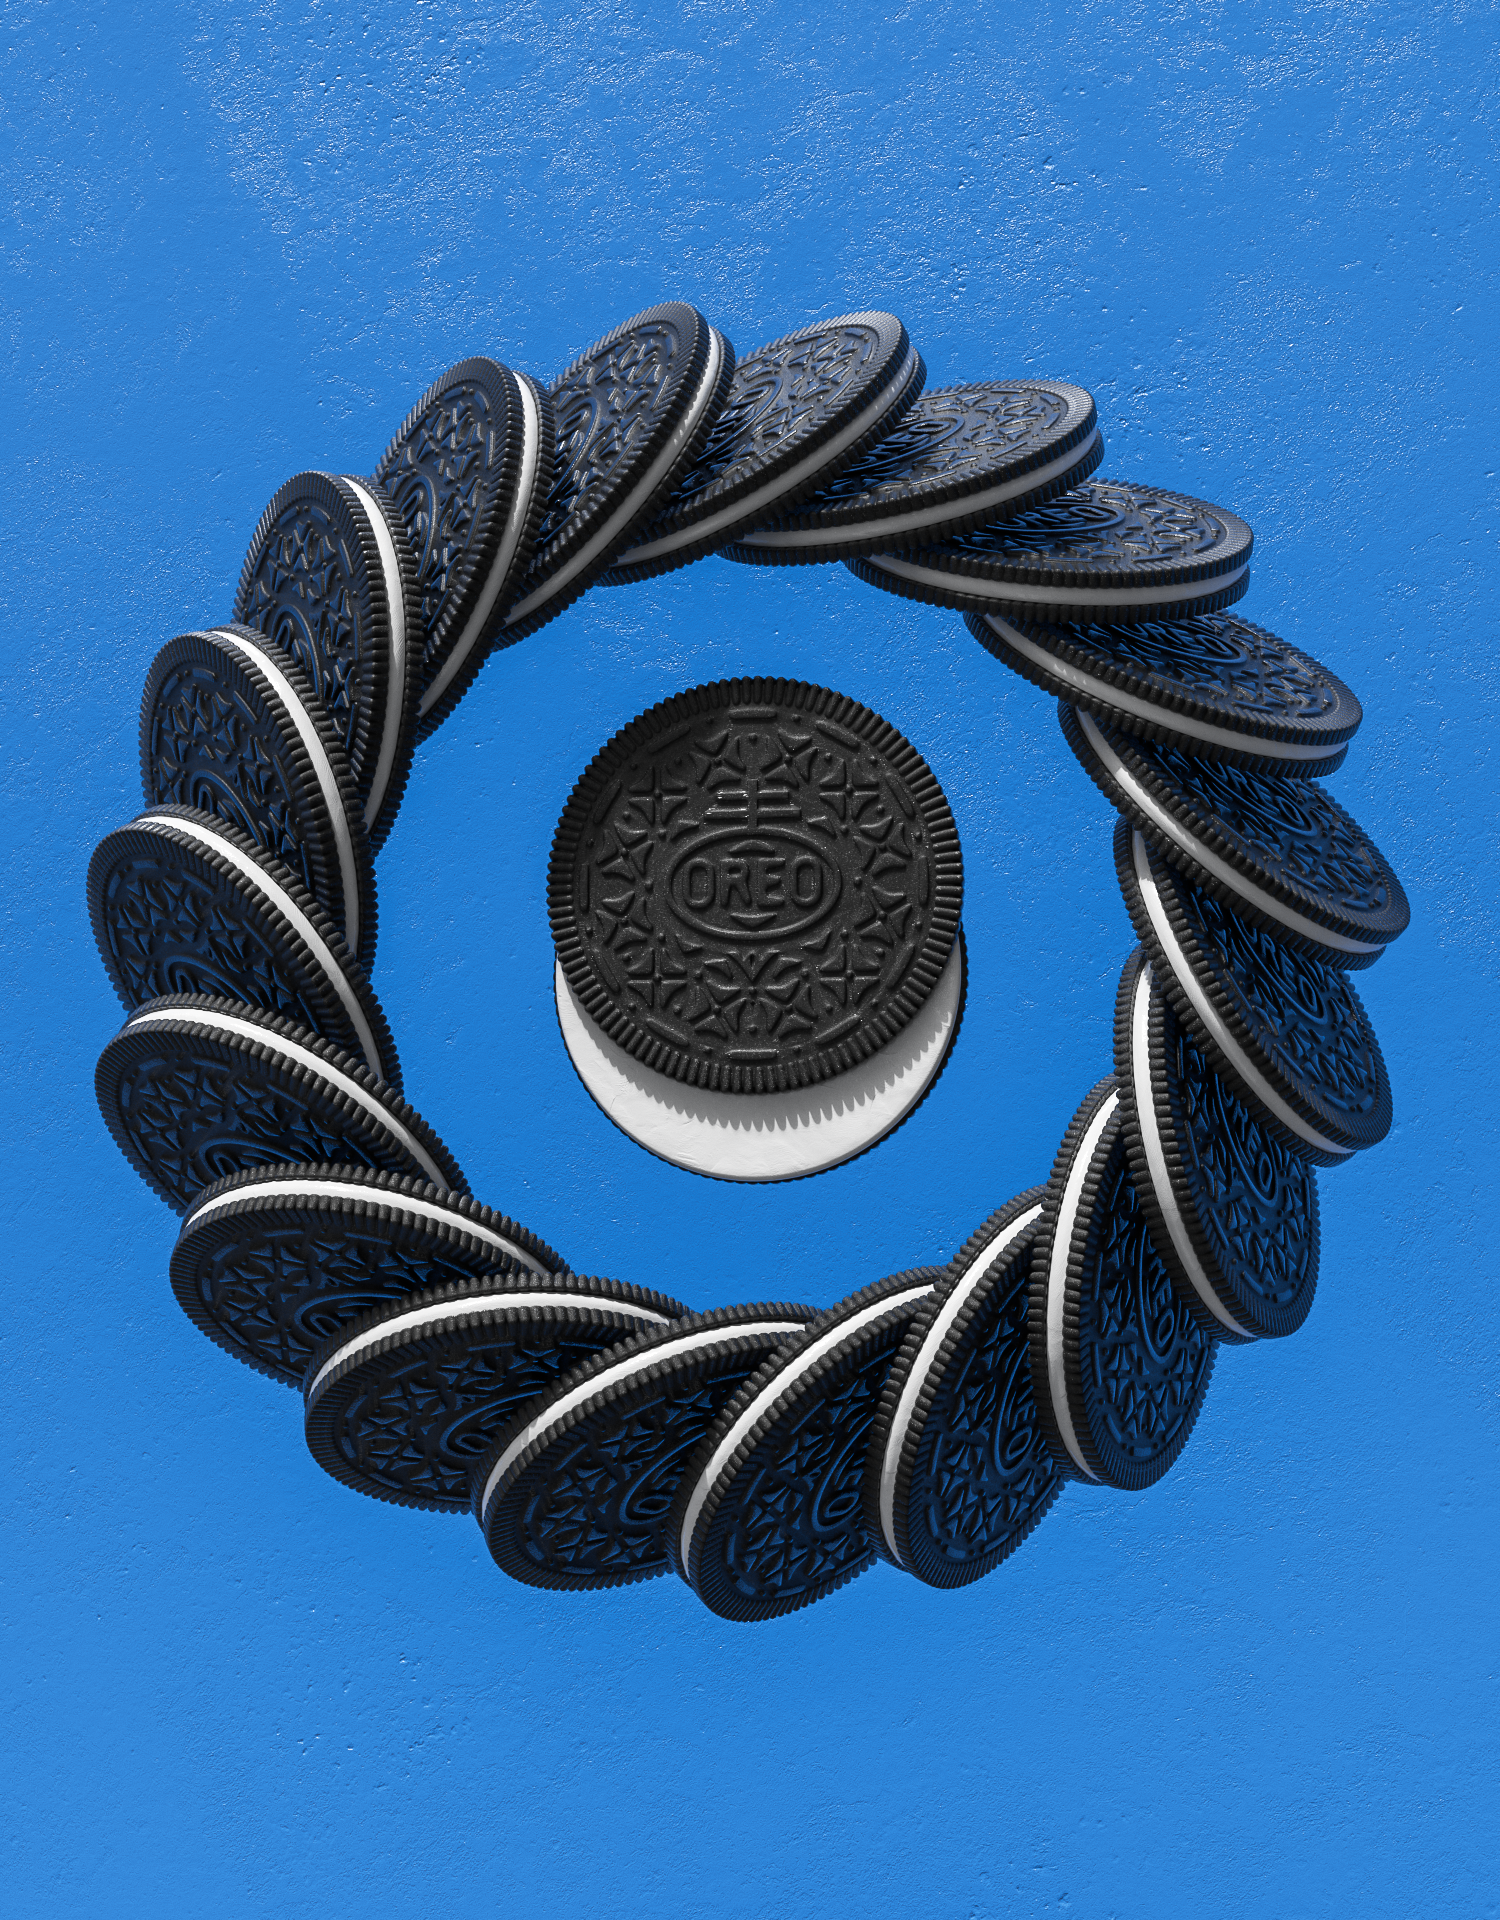 test_oreo_02.png